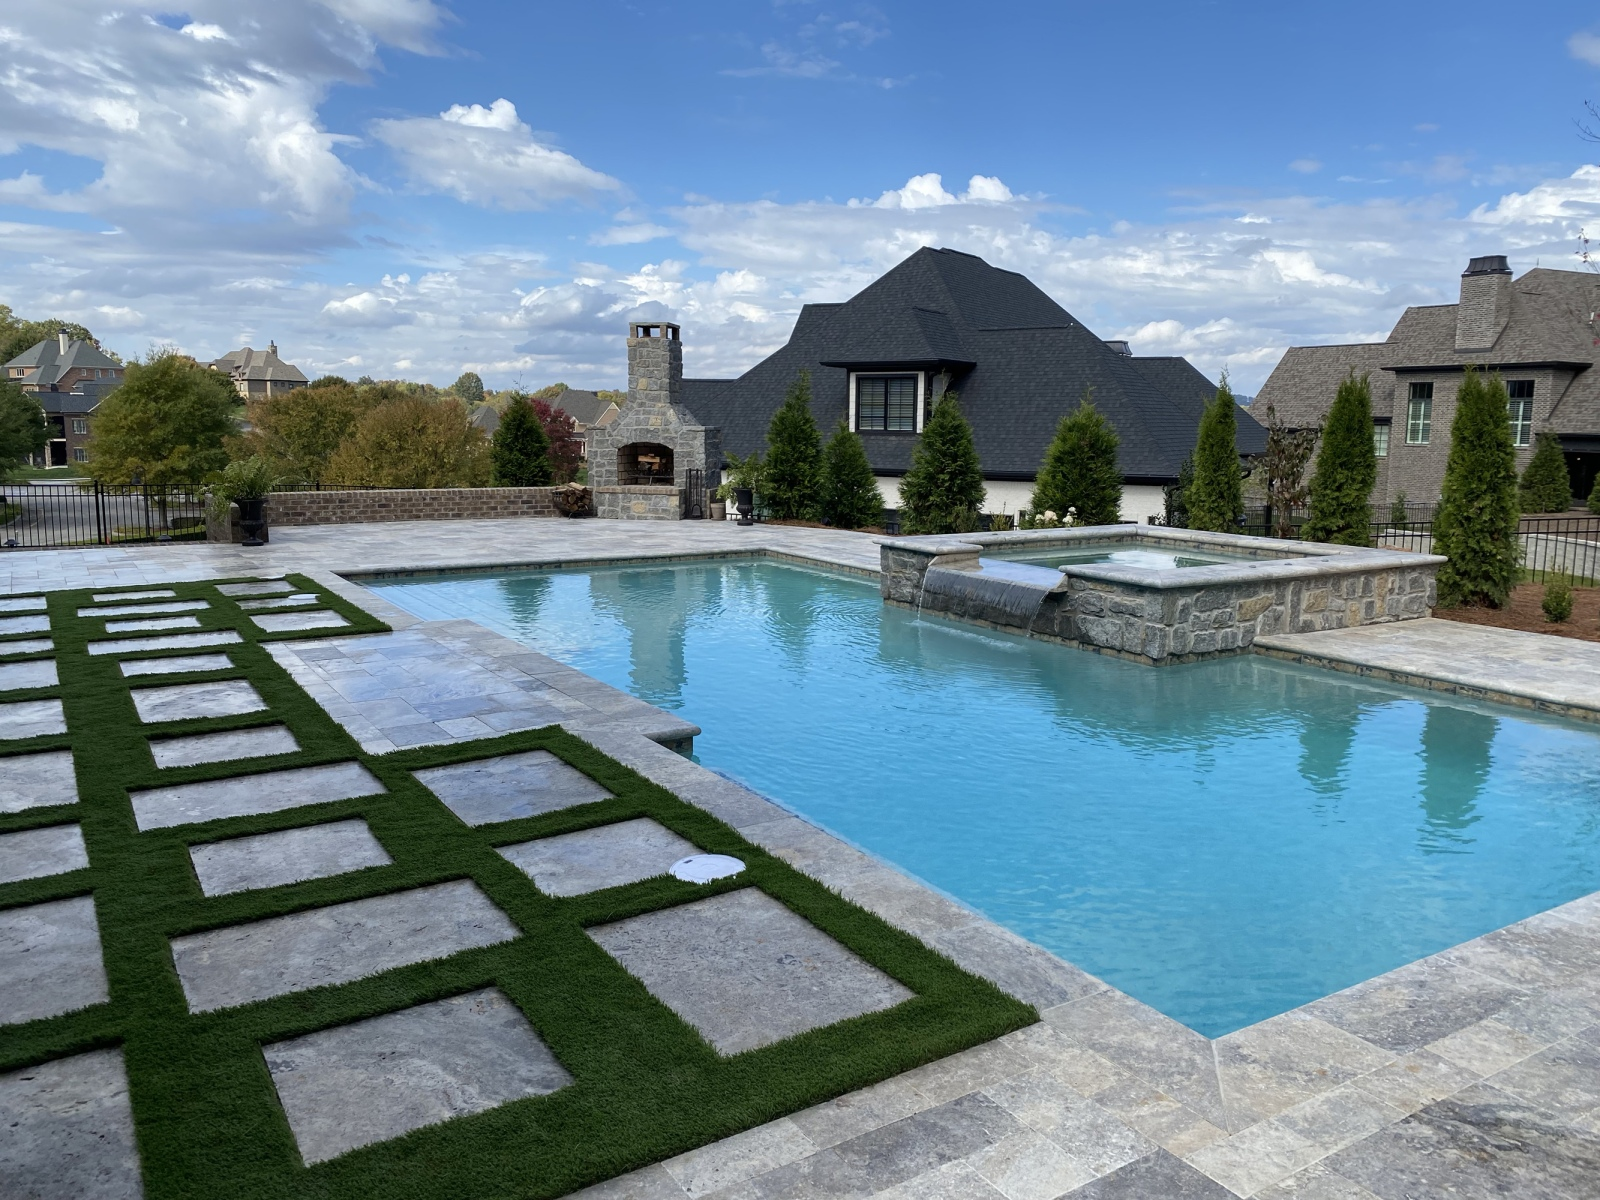 The work of Morales Outdoor Living